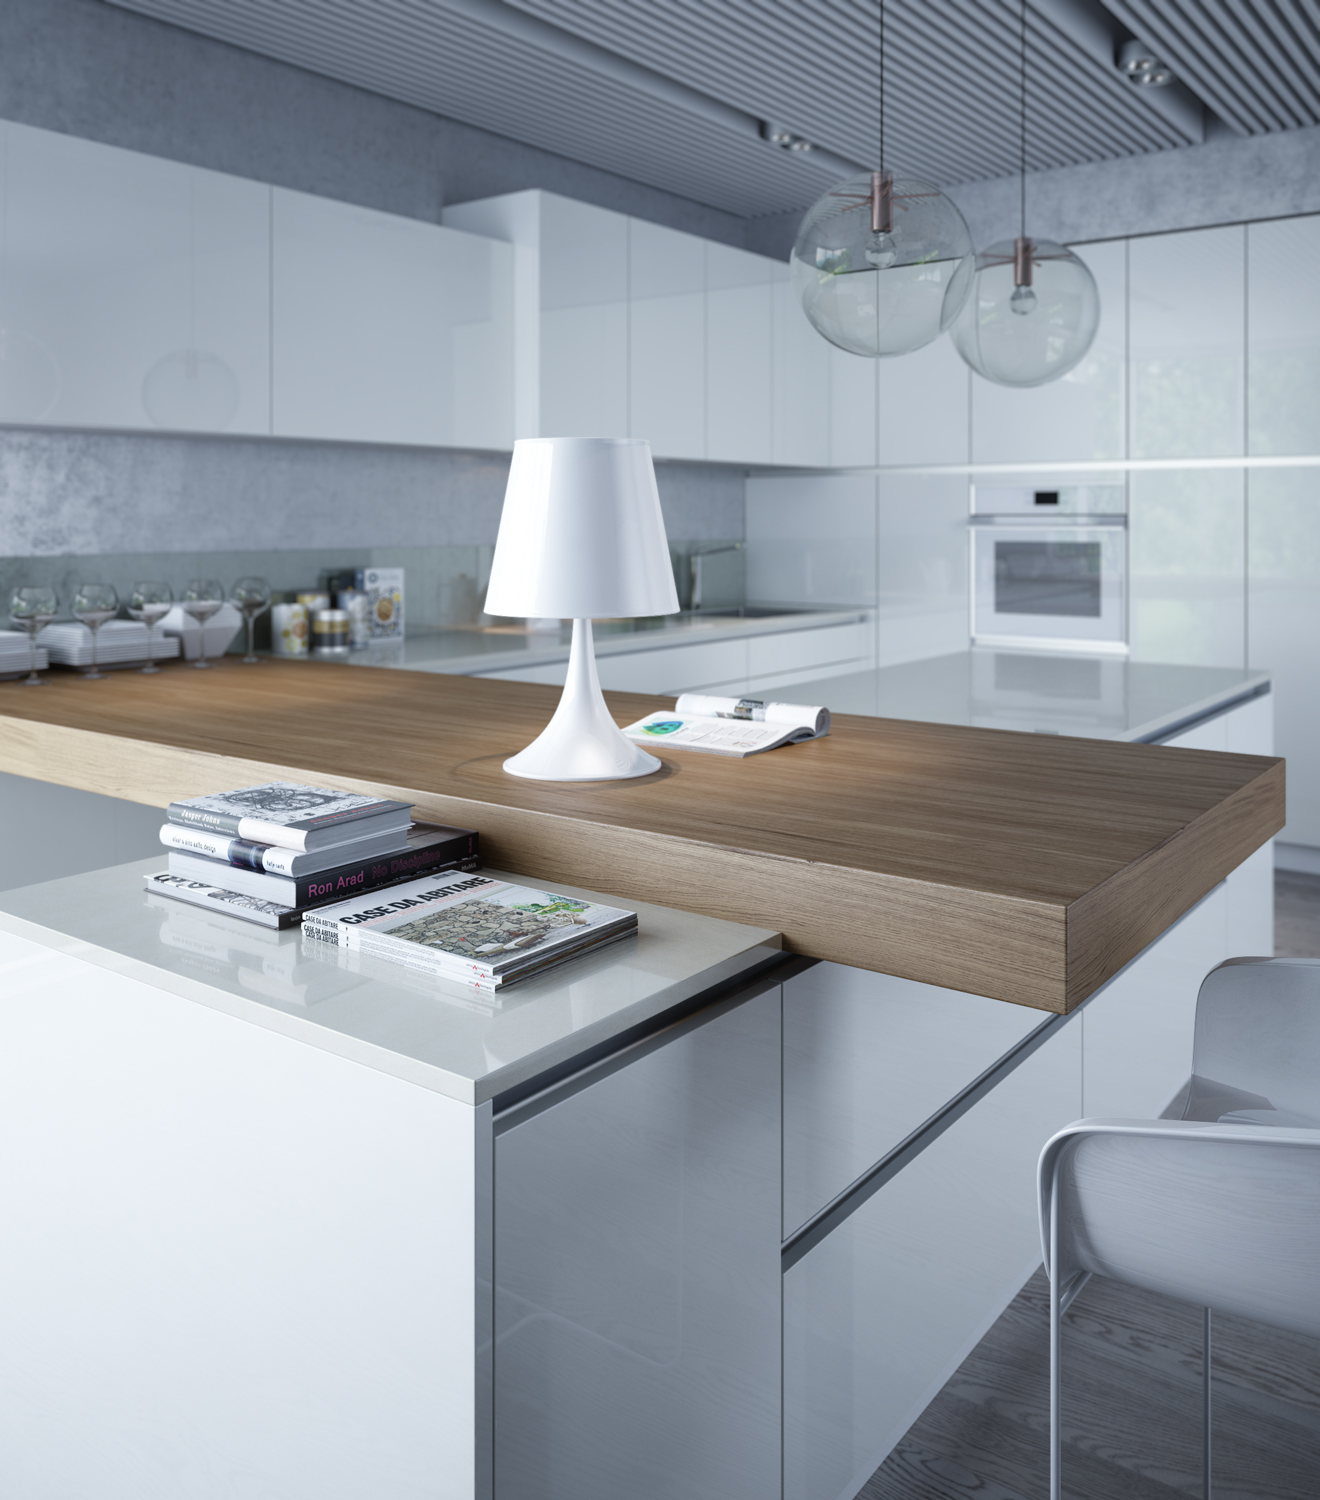 White kitchen on Behance